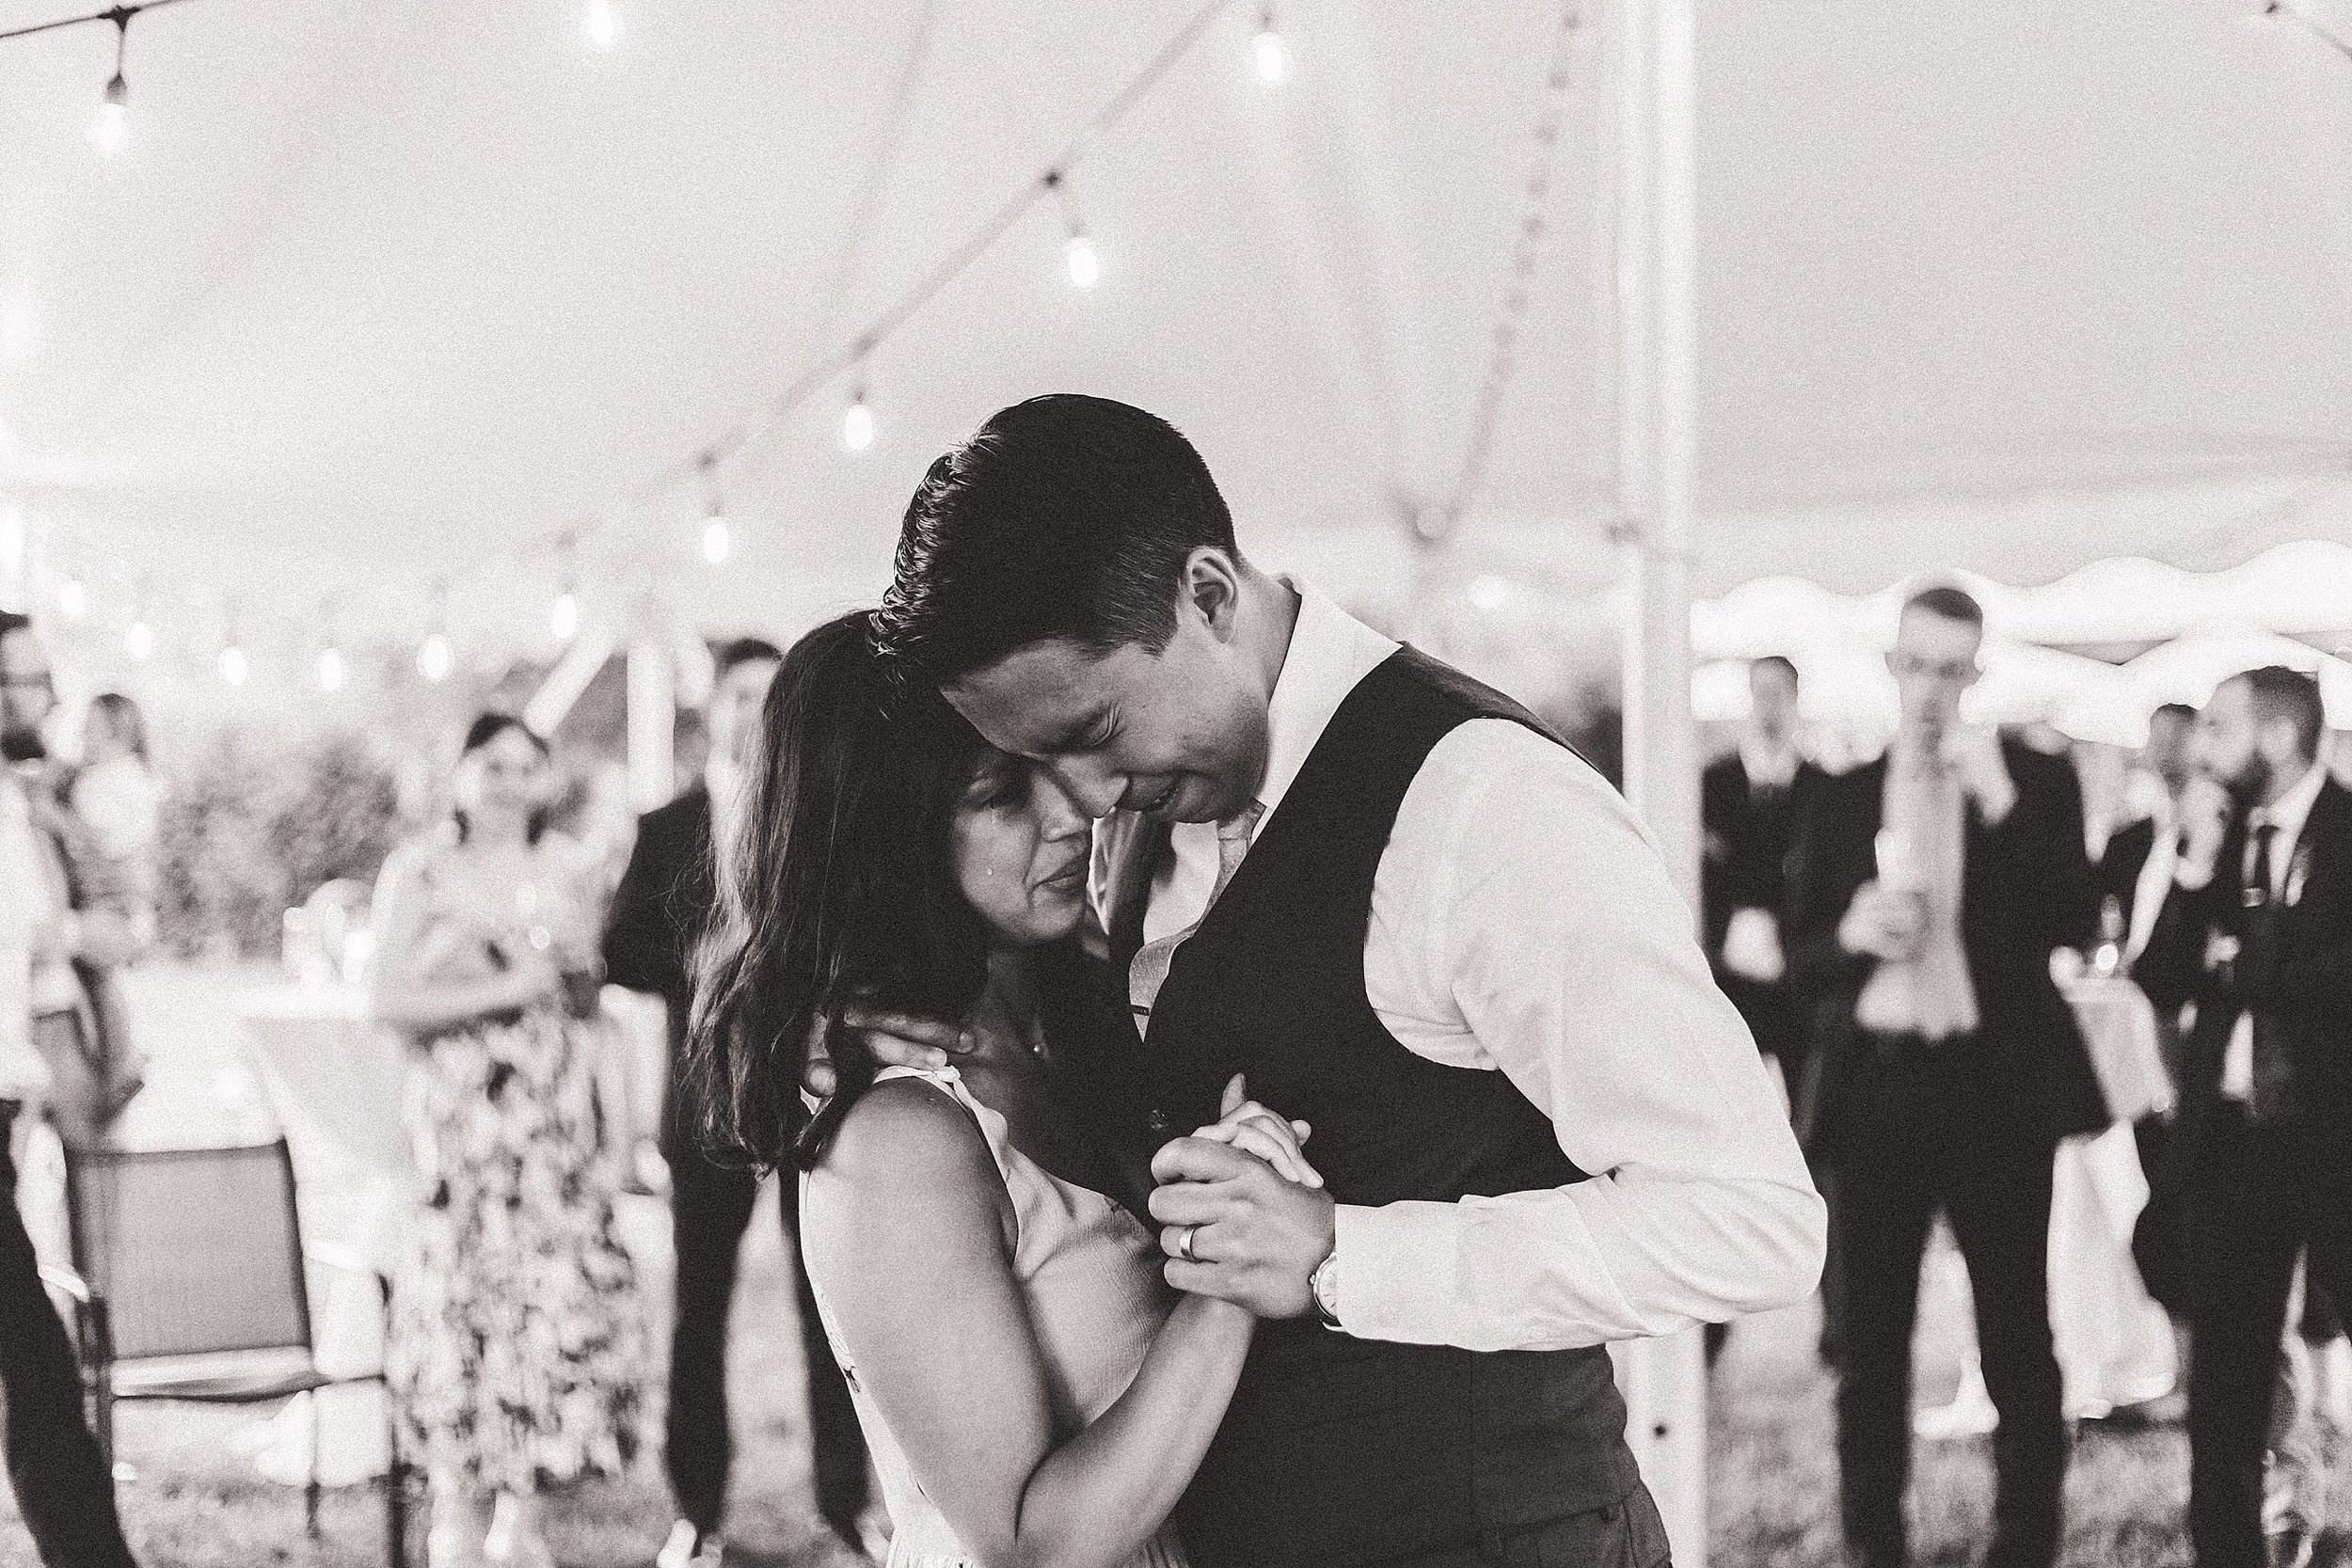 Kendrick danced with his sister and sister-in-law, the wonderful, strong women in his life.